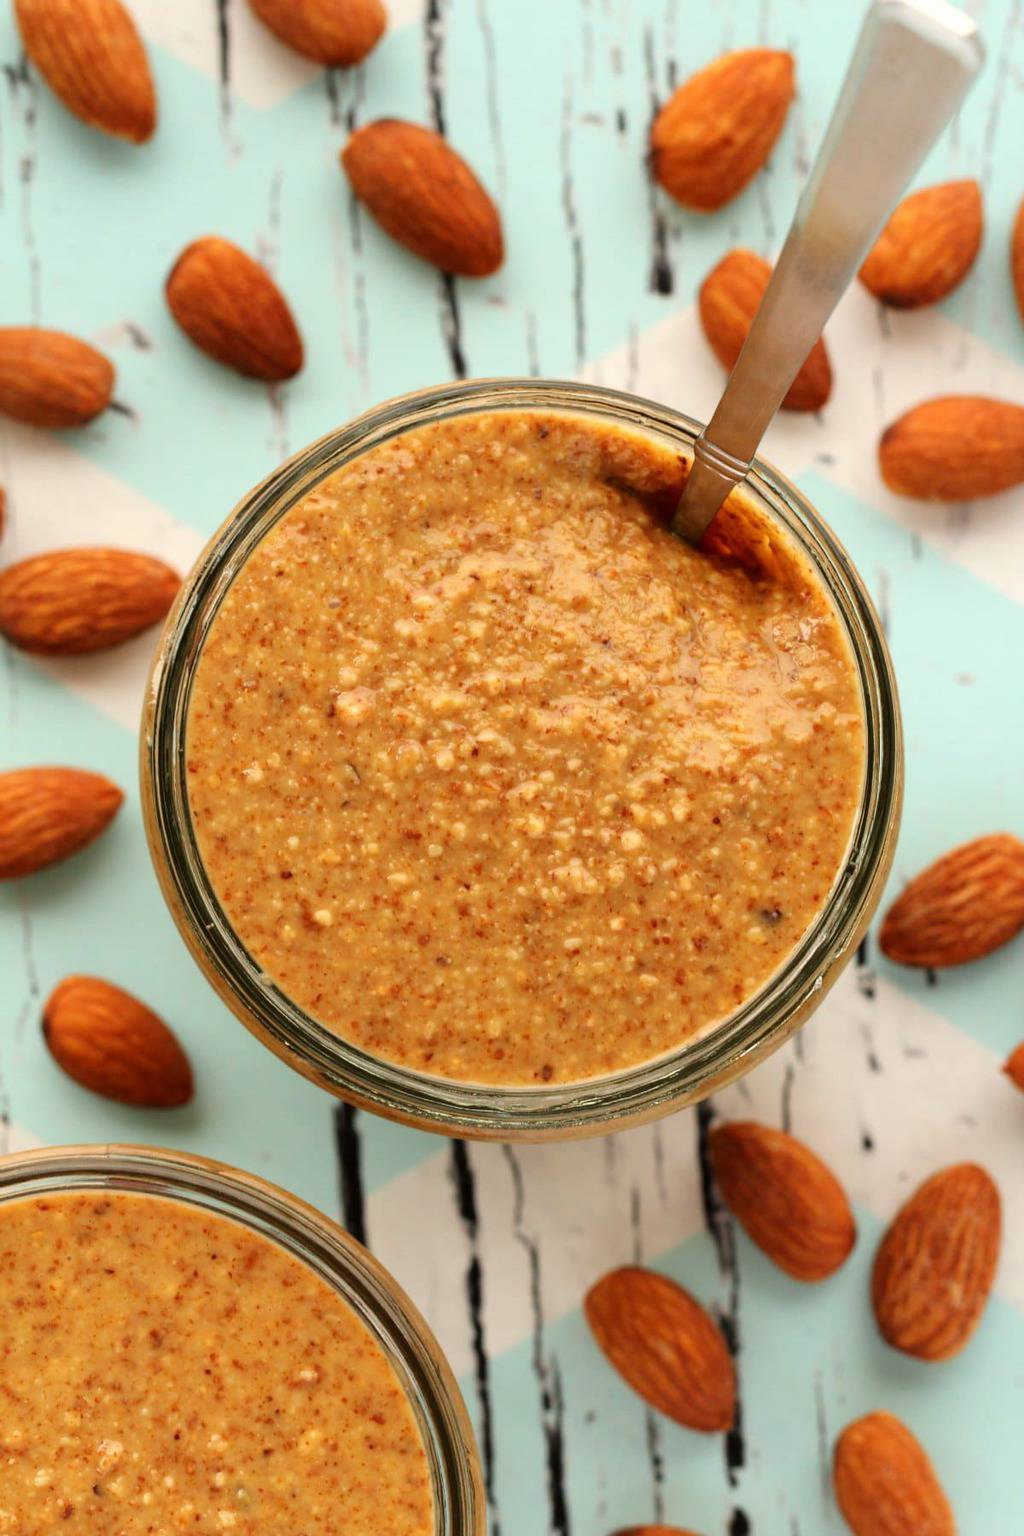 Almond butter in a glass jar with a spoon.